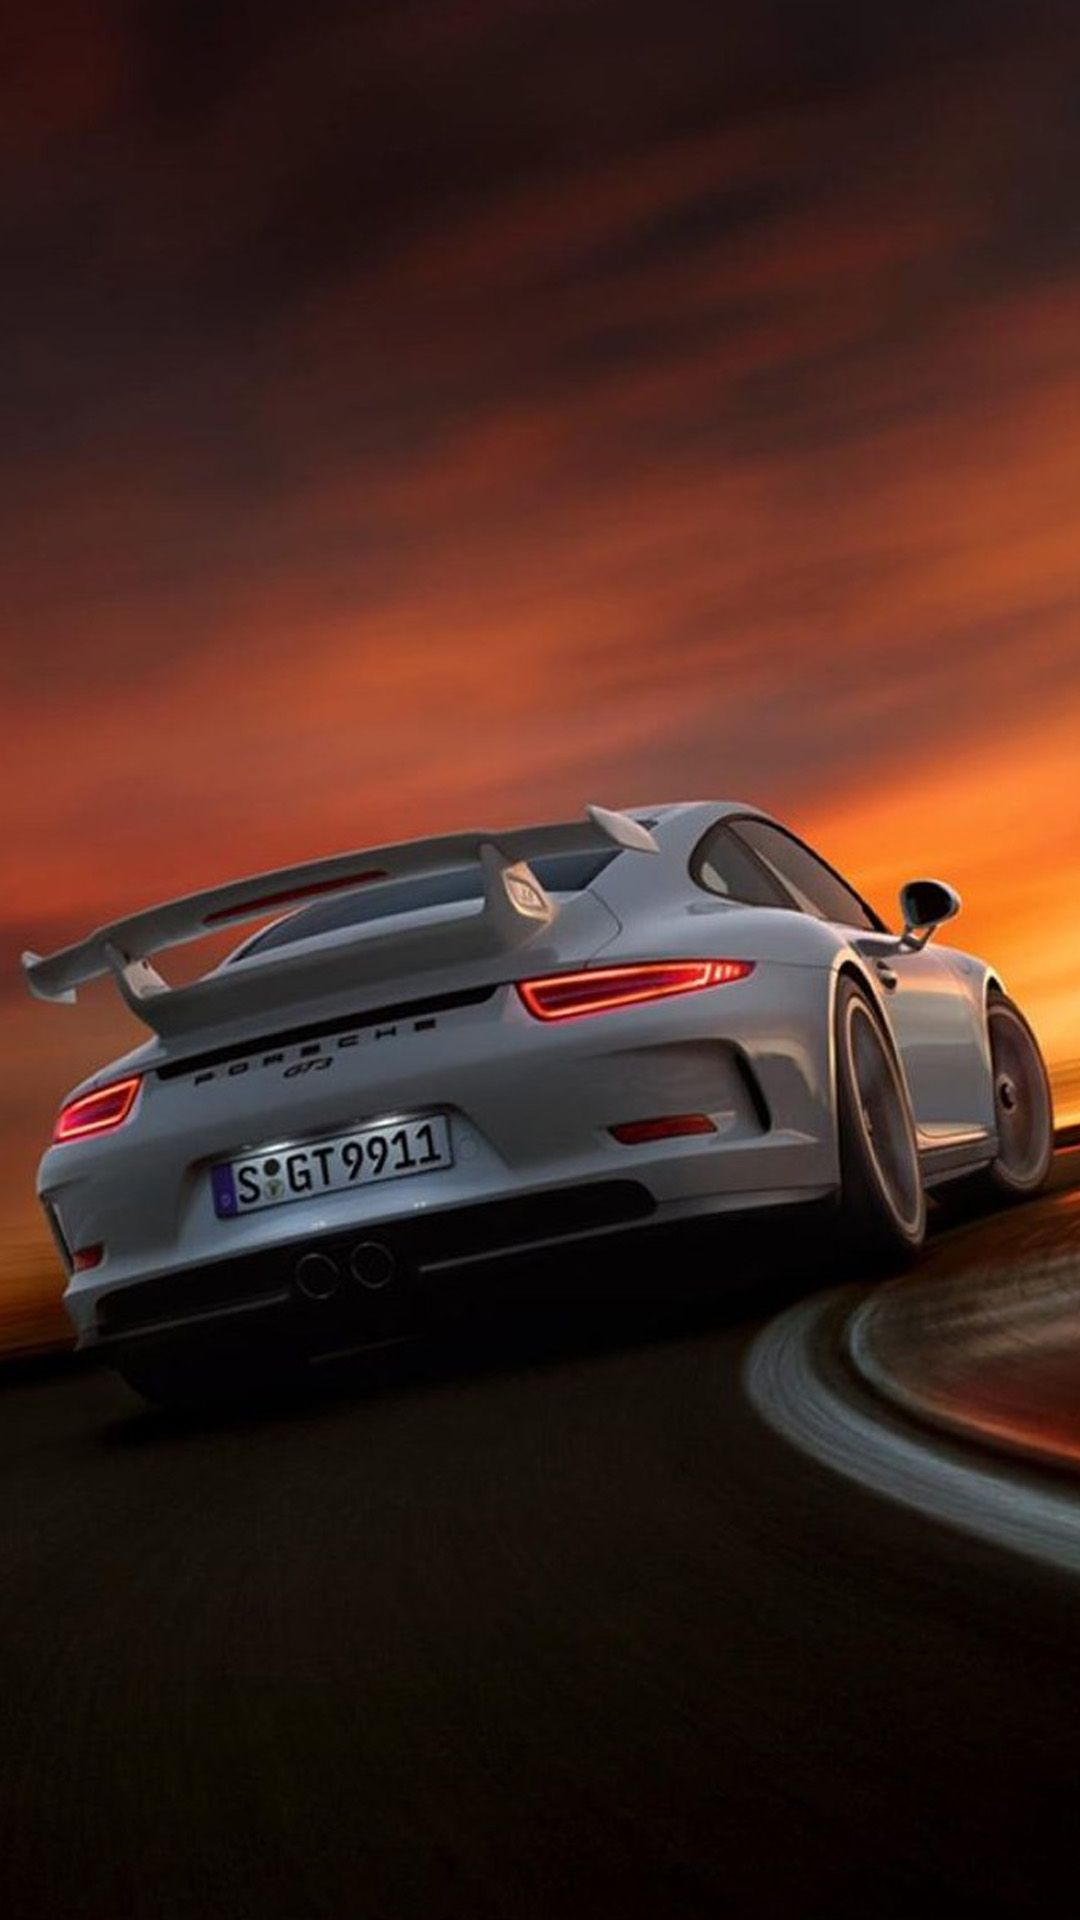 Pin On Exotic Car Hd Iphone Wallpapers